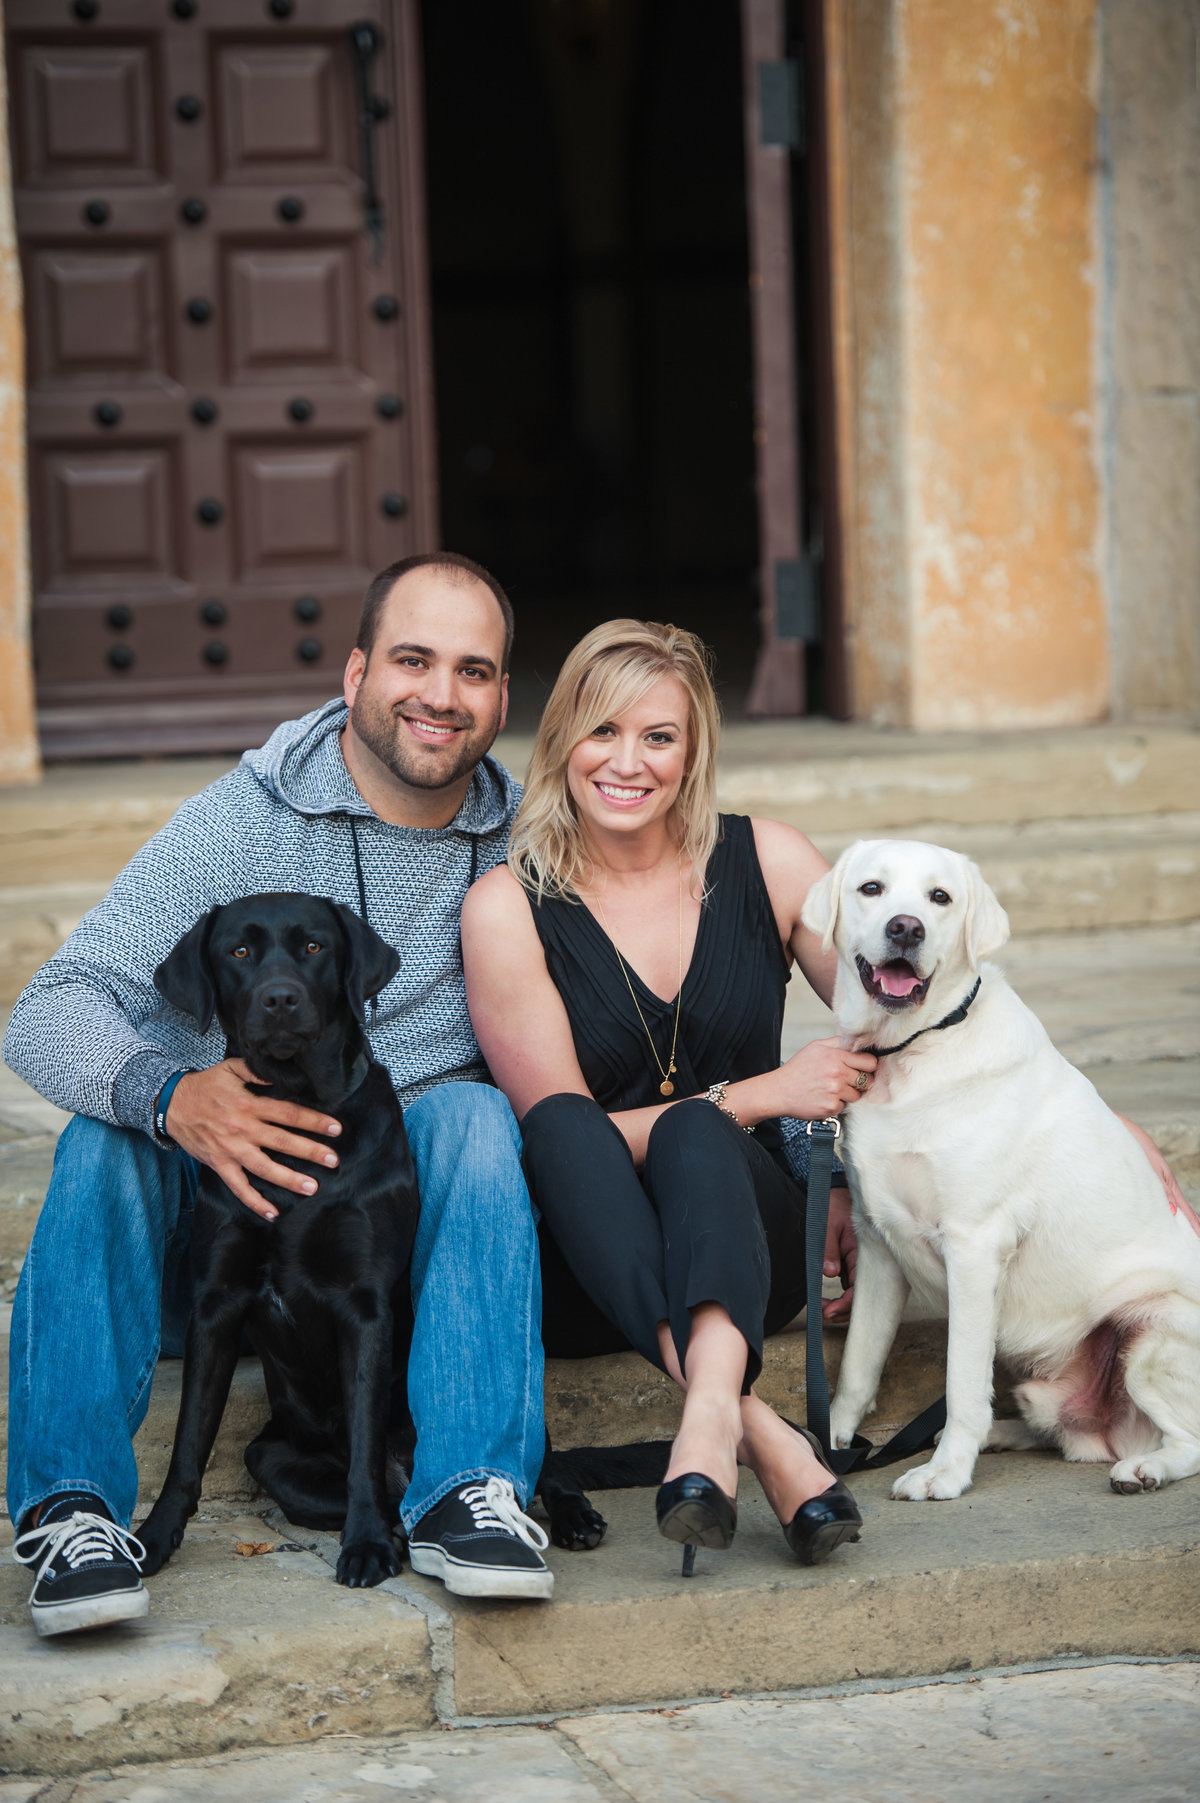 Santa-Barbara-Courthouse-Engagement-Photos-64 copy